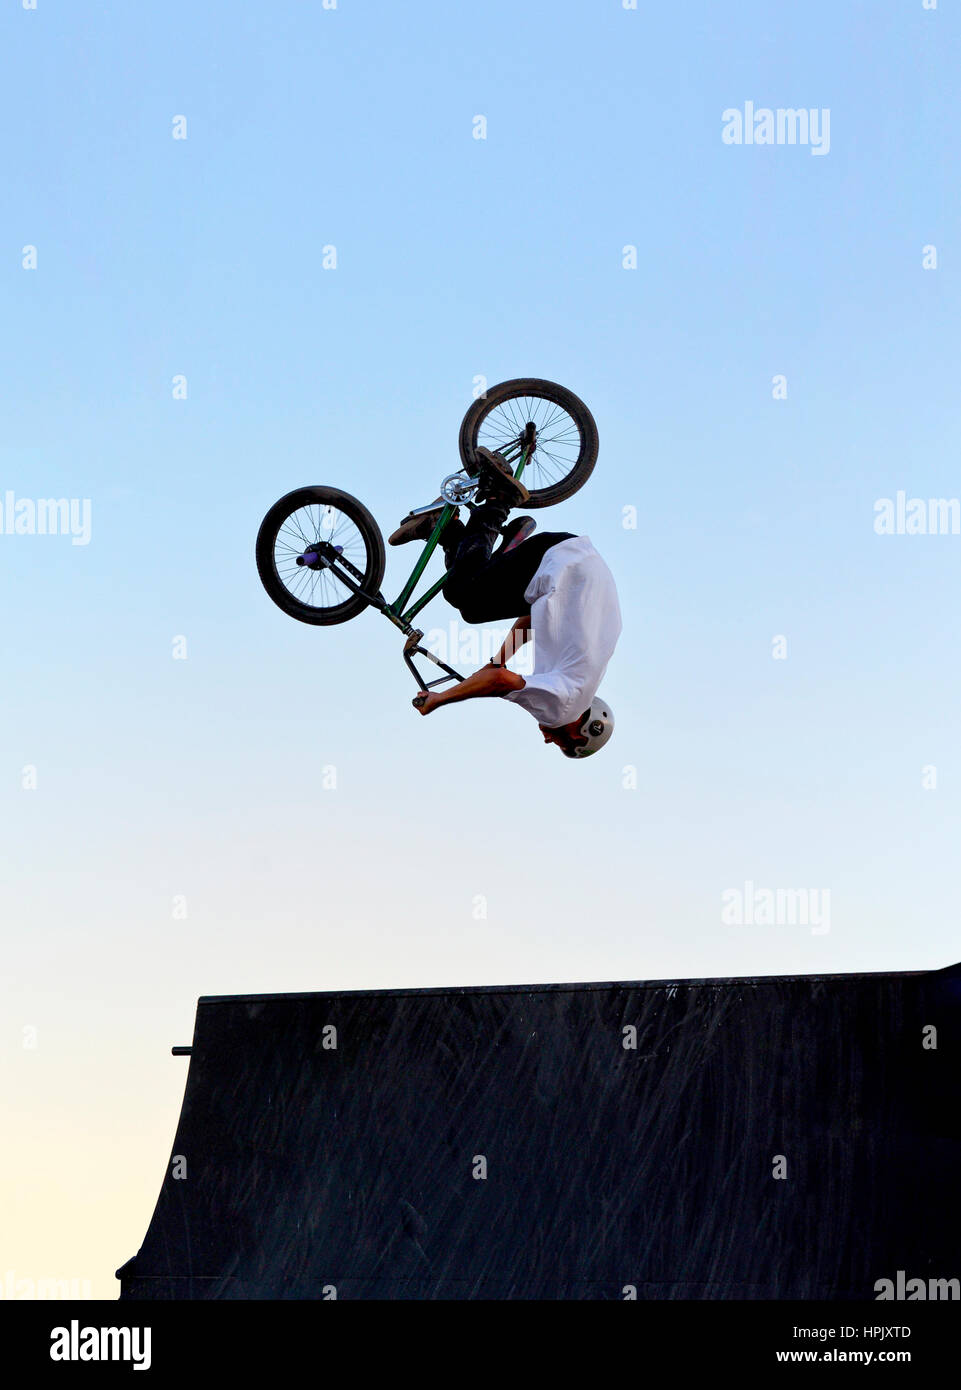 A person doing a back flip over a bike jump ramp  on a BMX bicycle - Stock Image